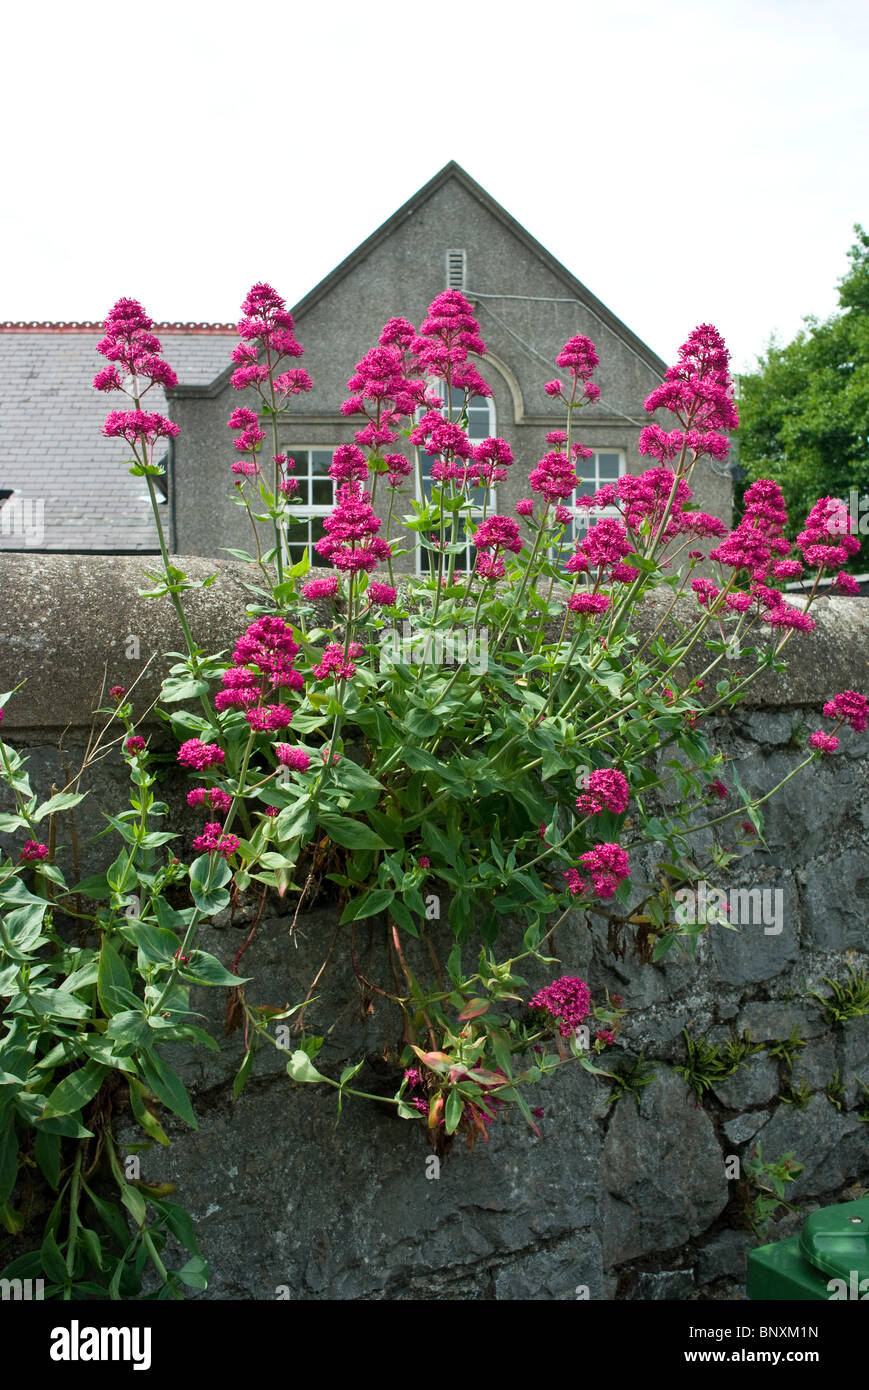 Red Valerian flowers typically growing out of a rubble stone wall in Skerries, north county Dublin, Ireland - Stock Image